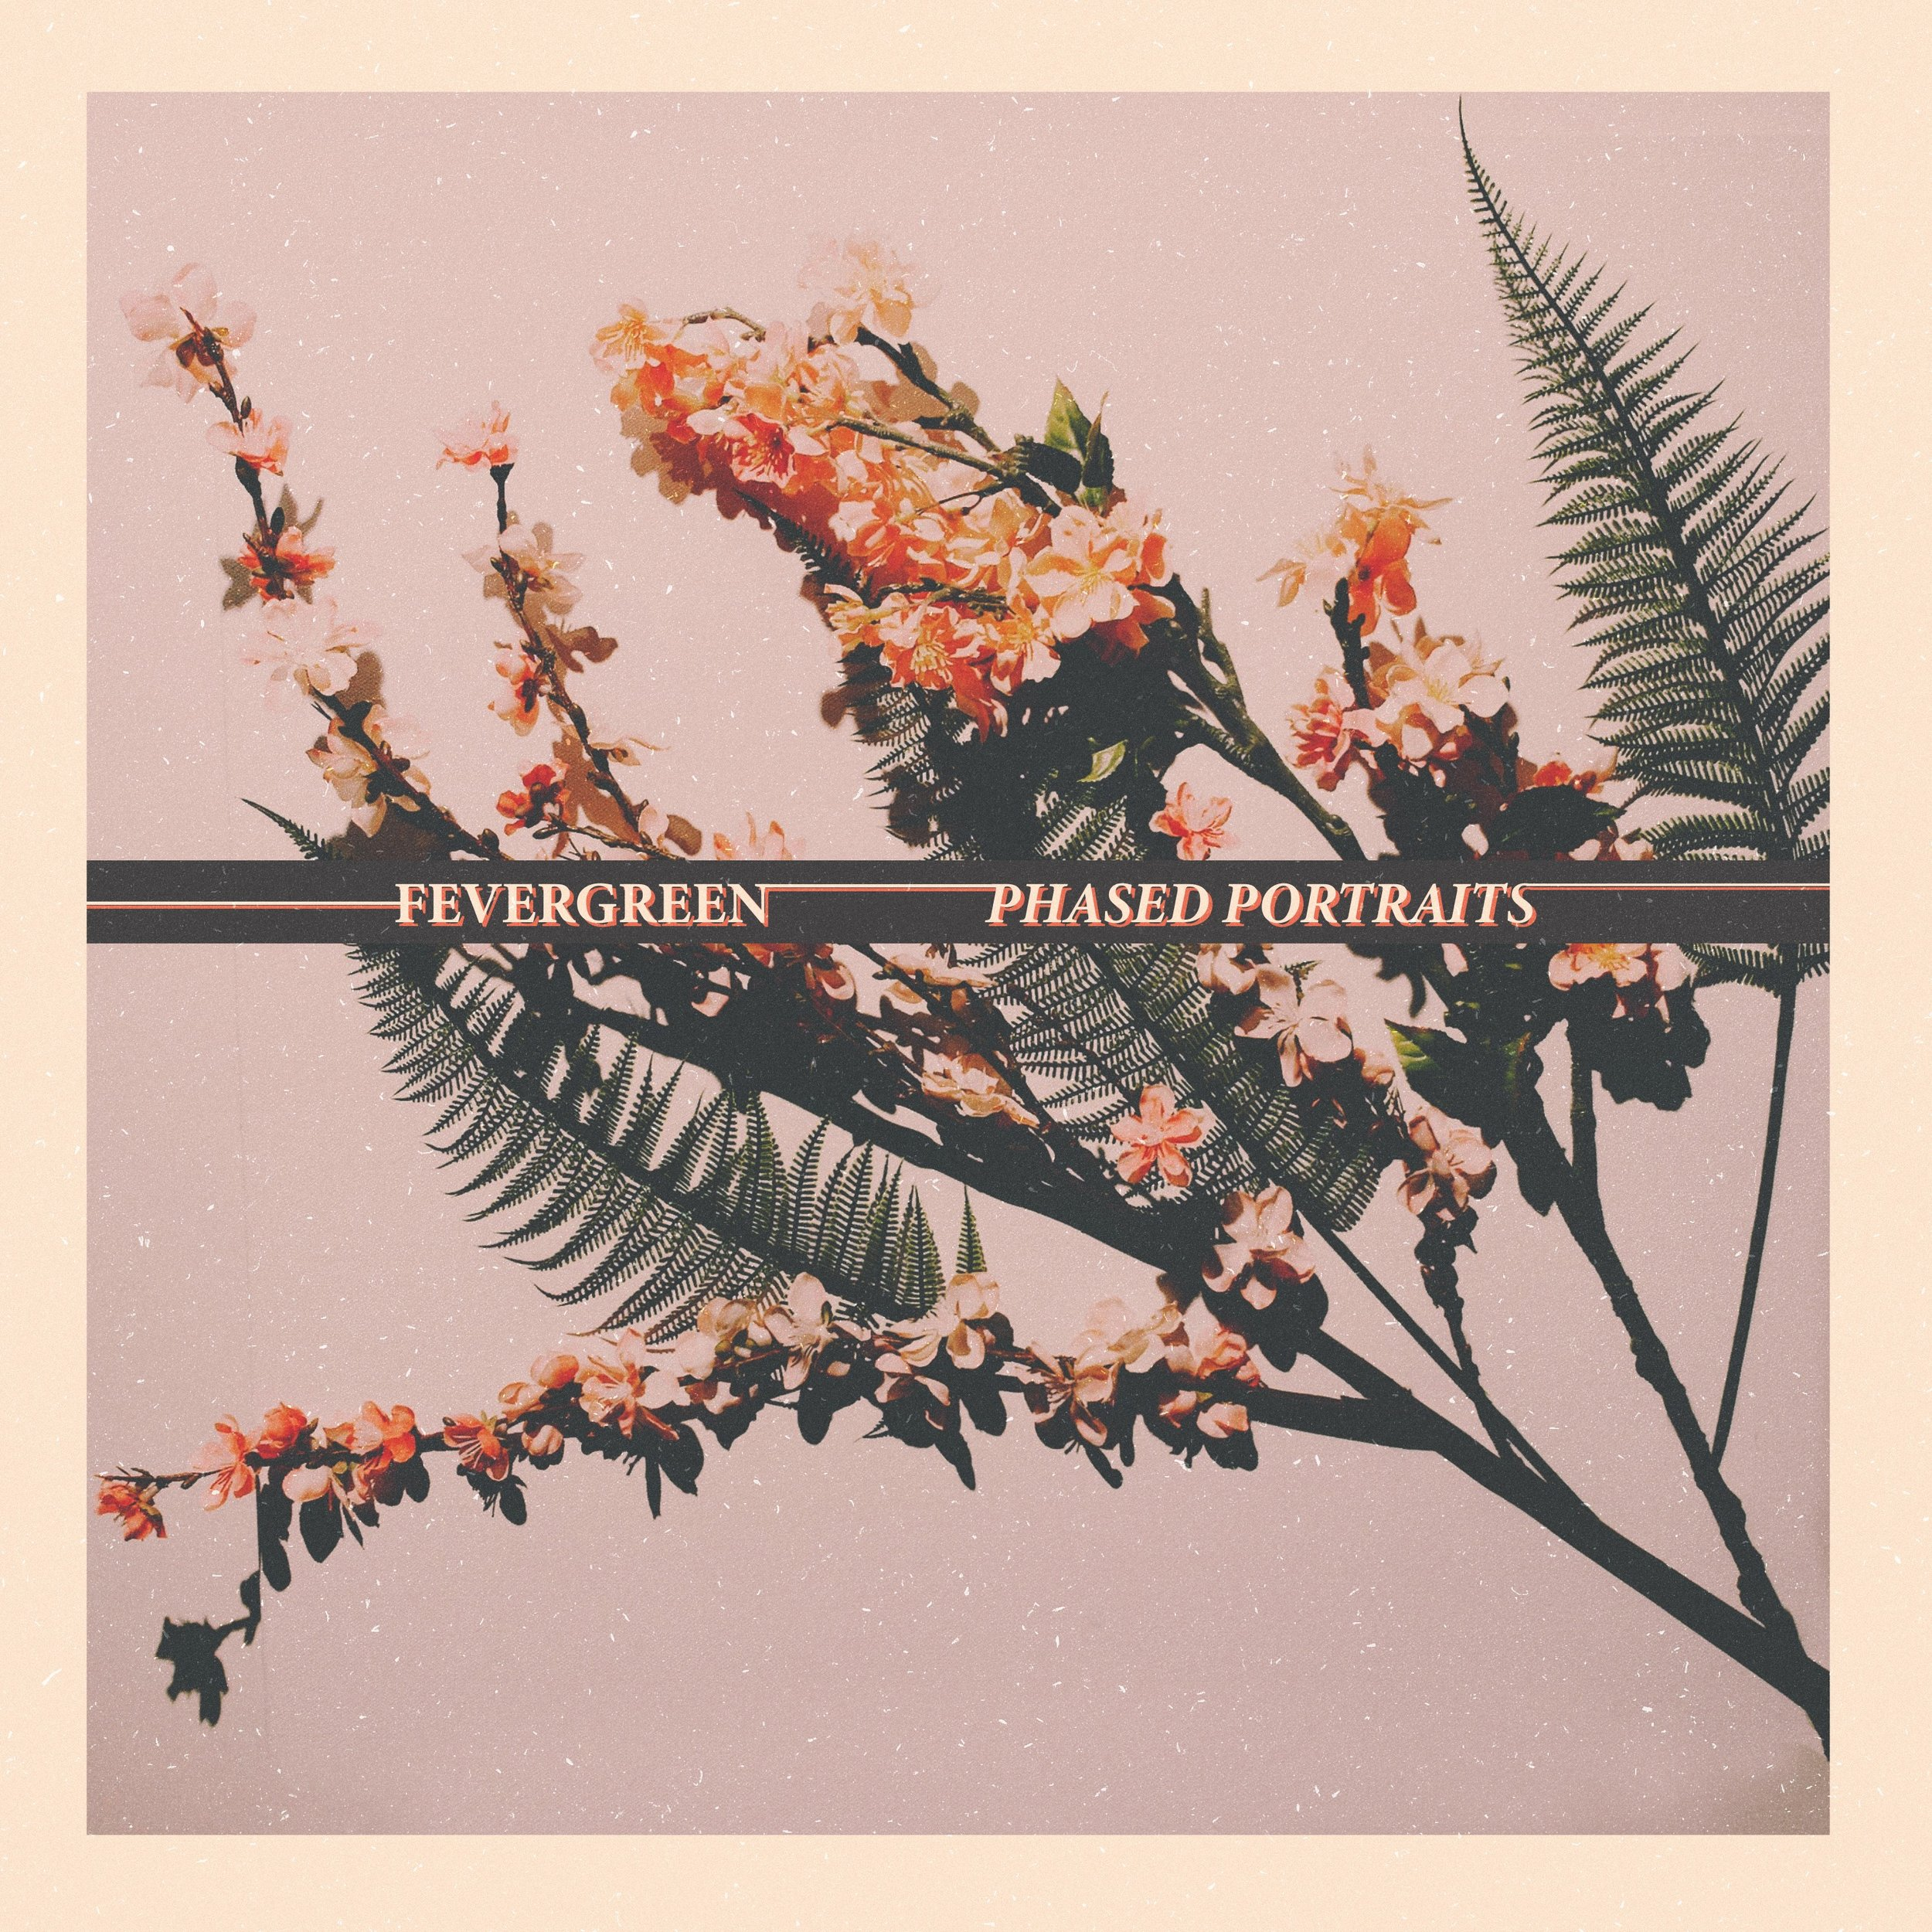 PHASED PORTRAITS: Fevergreen's new EP takes on a softer tone.